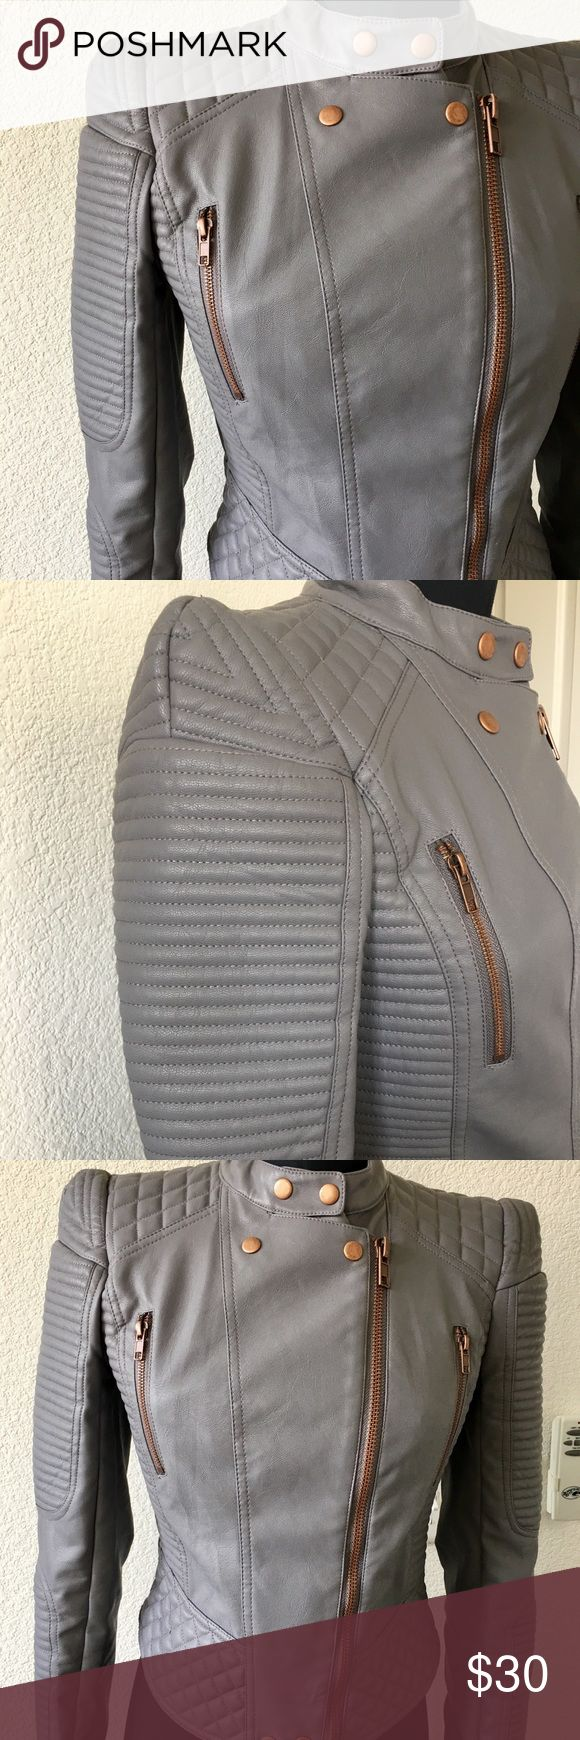 Asos Women's Faux Gray Leather Jacket w/ Rose Gold This jacket is perfect for the summer with fun rose gold metal accents and great puff shoulder.  I am selling my Asos motorcycle jacket sadly because I barely wore it (2-3 times) and want to see it go to a good home.   Thank you! Asos Jackets & Coats Blazers